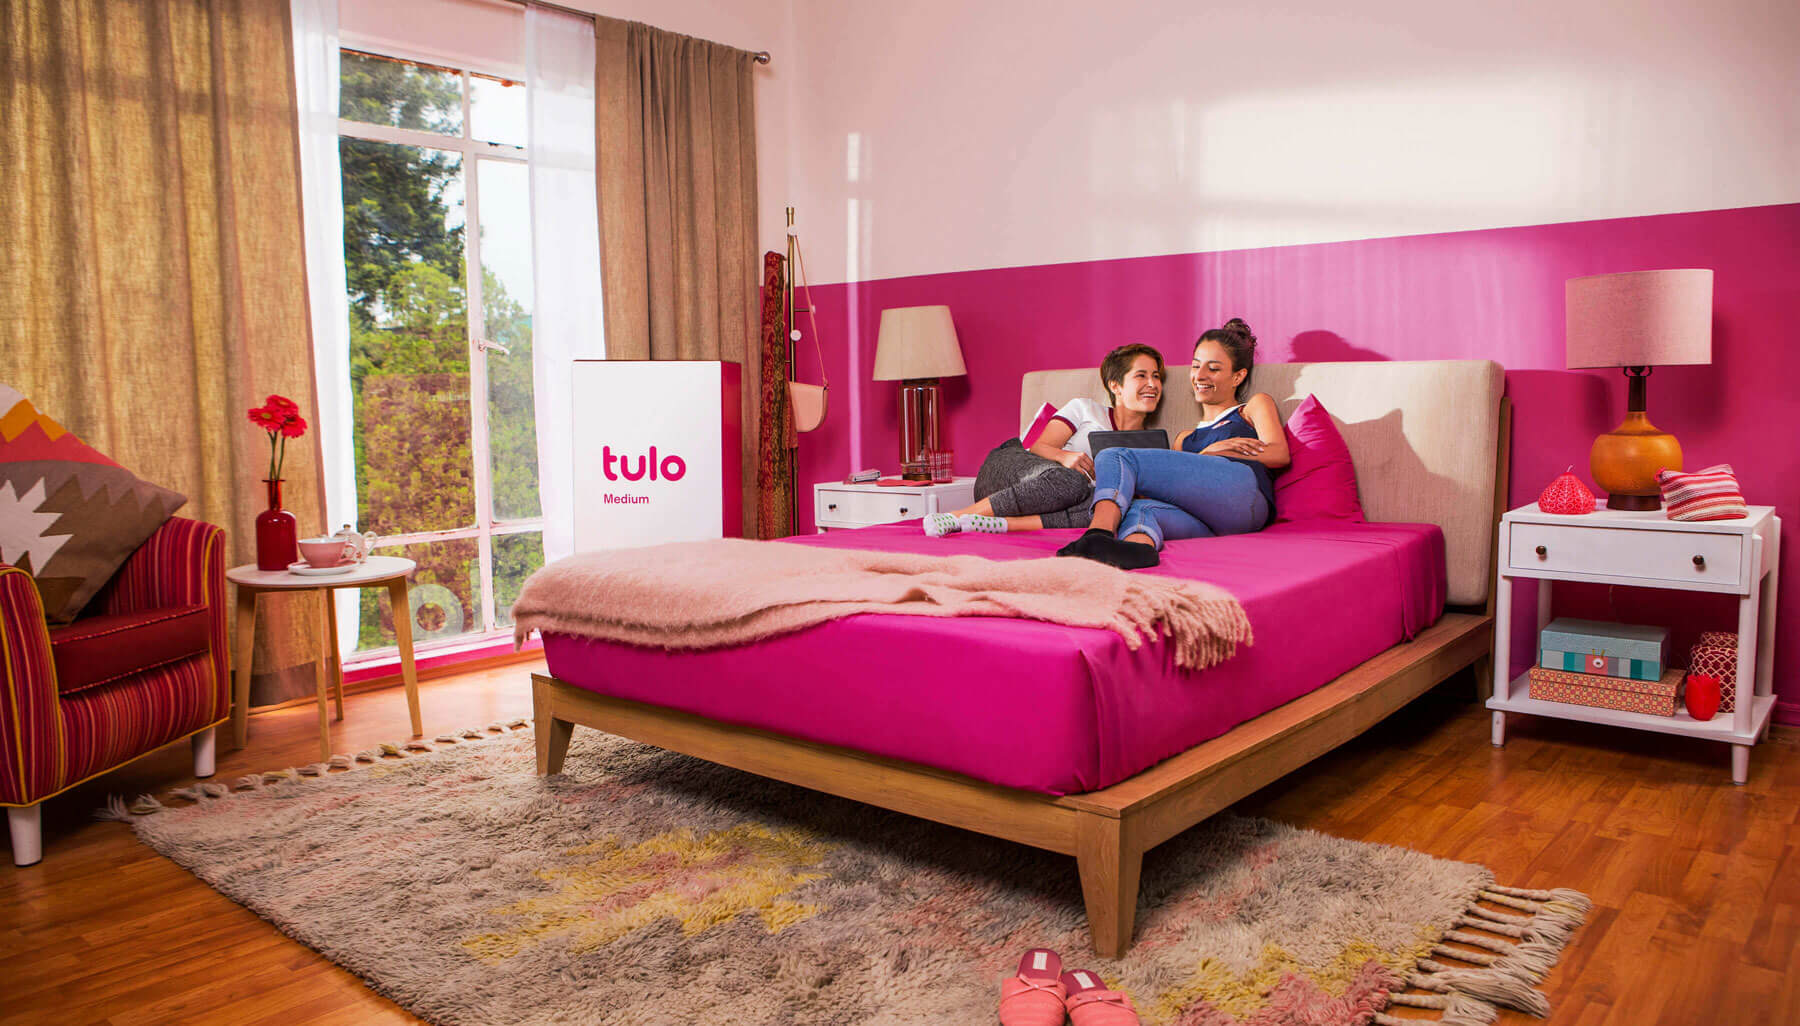 Tulo Mattress Reviews Be Aware Of This Coupon Available